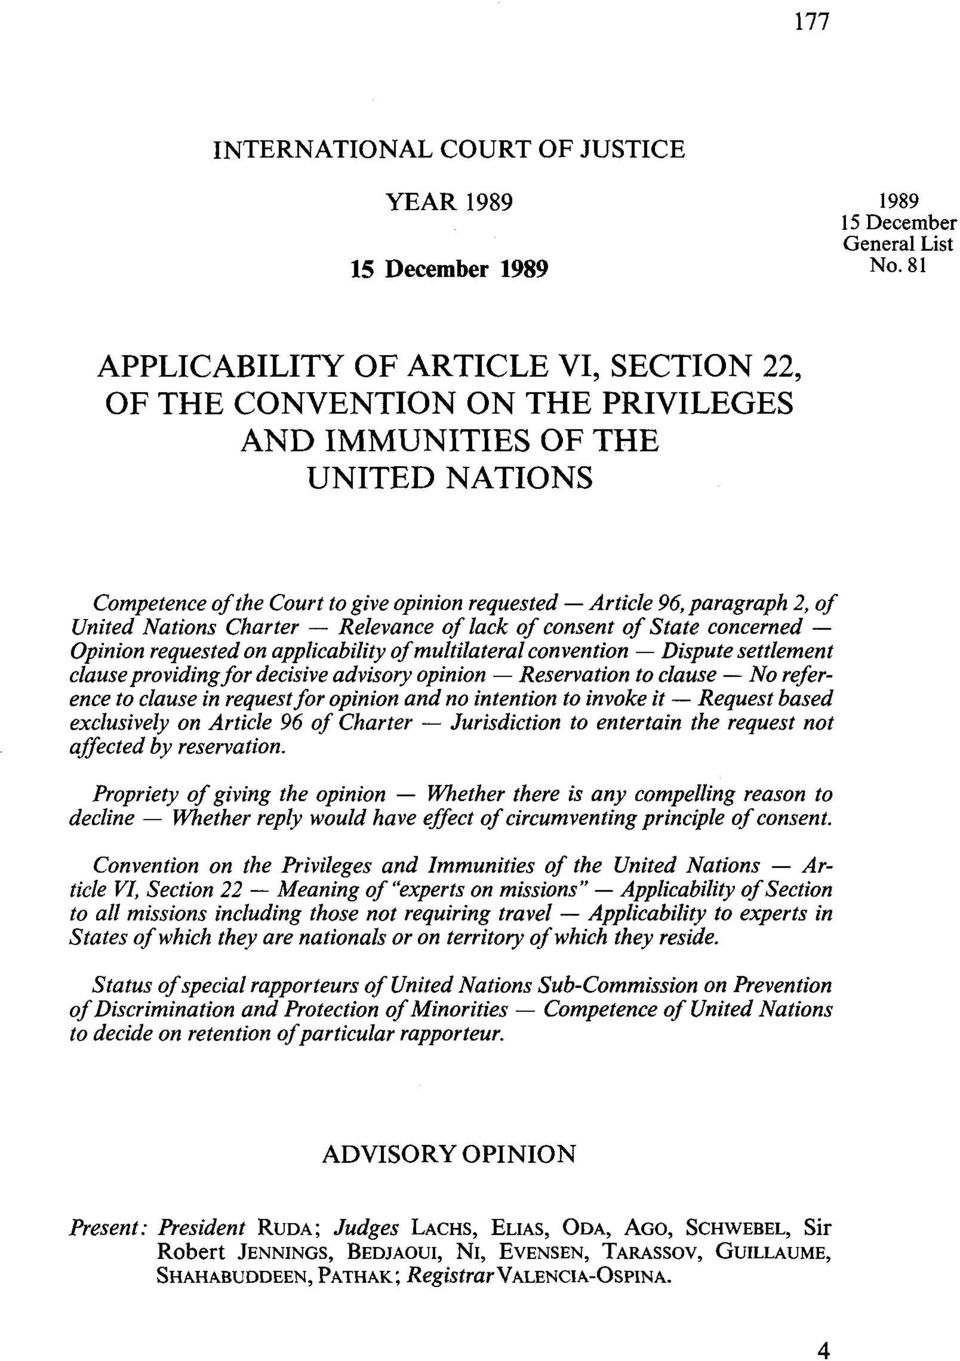 United Nations Charter - Relevance of lack of consent of State concerned - Opinion requested on applicability of multilateral convention - Dispute settlement clauseproviding for decisive advisory